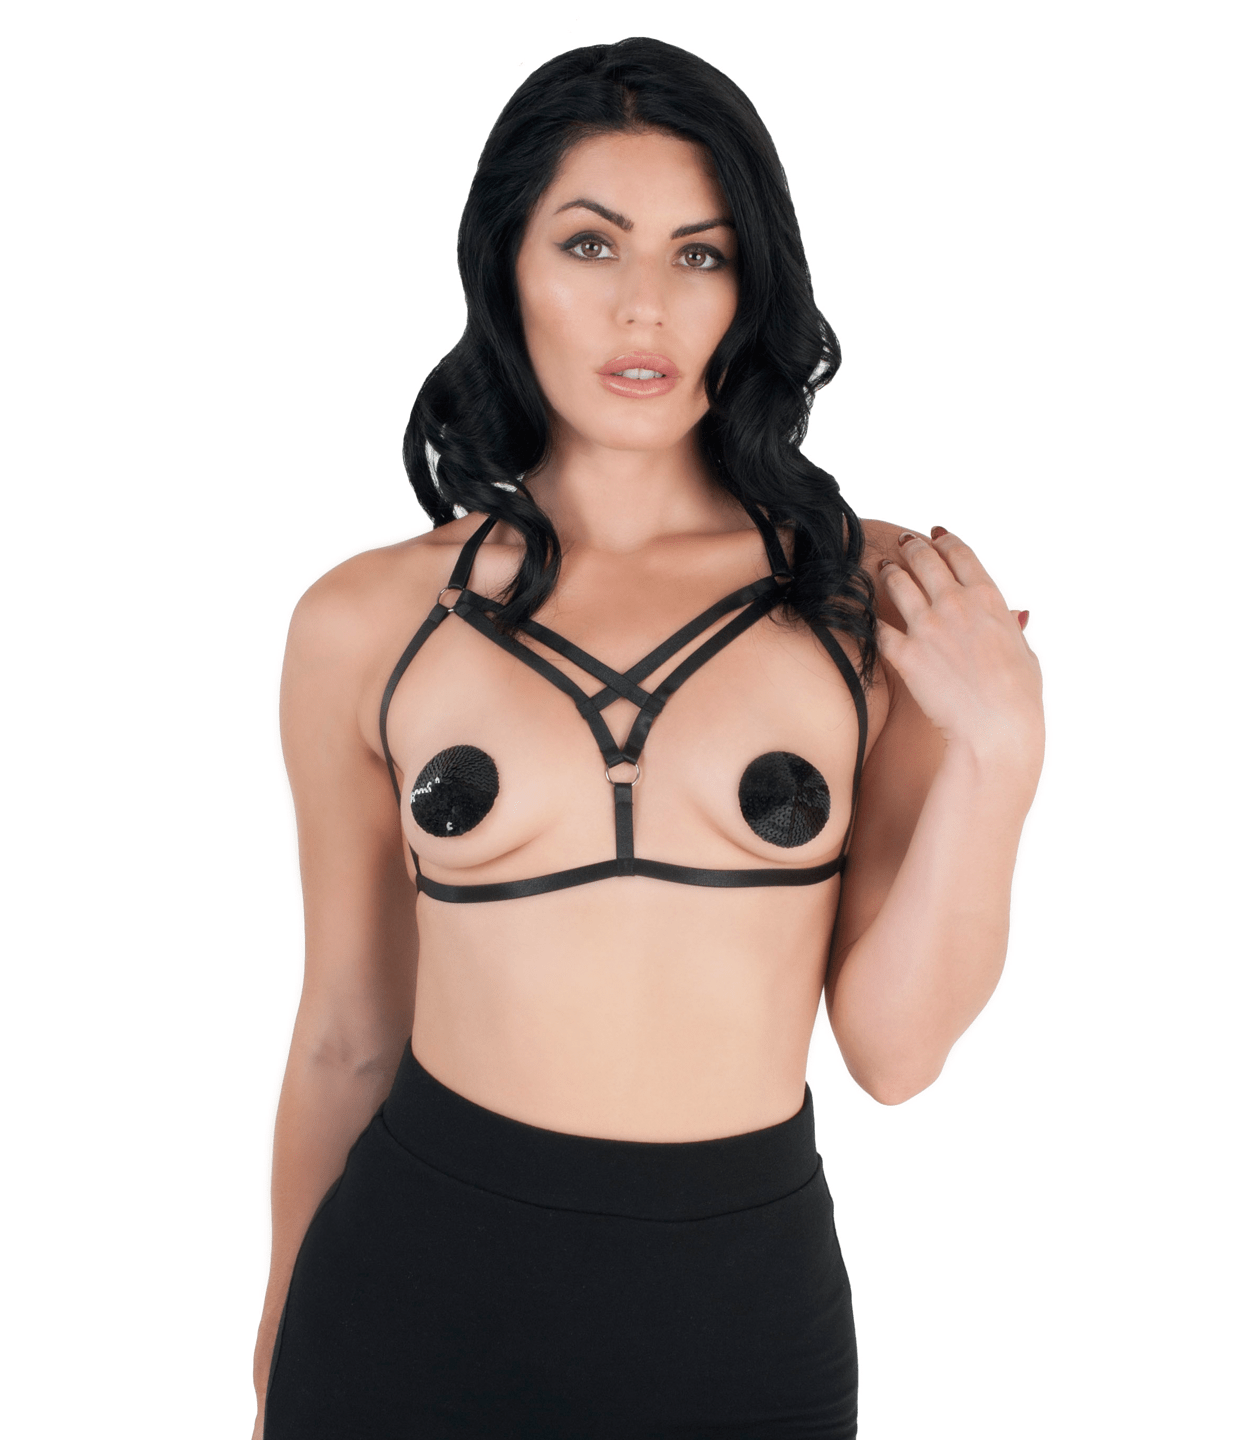 BRA0400 Elastic Harness love in leather front image saucy hq